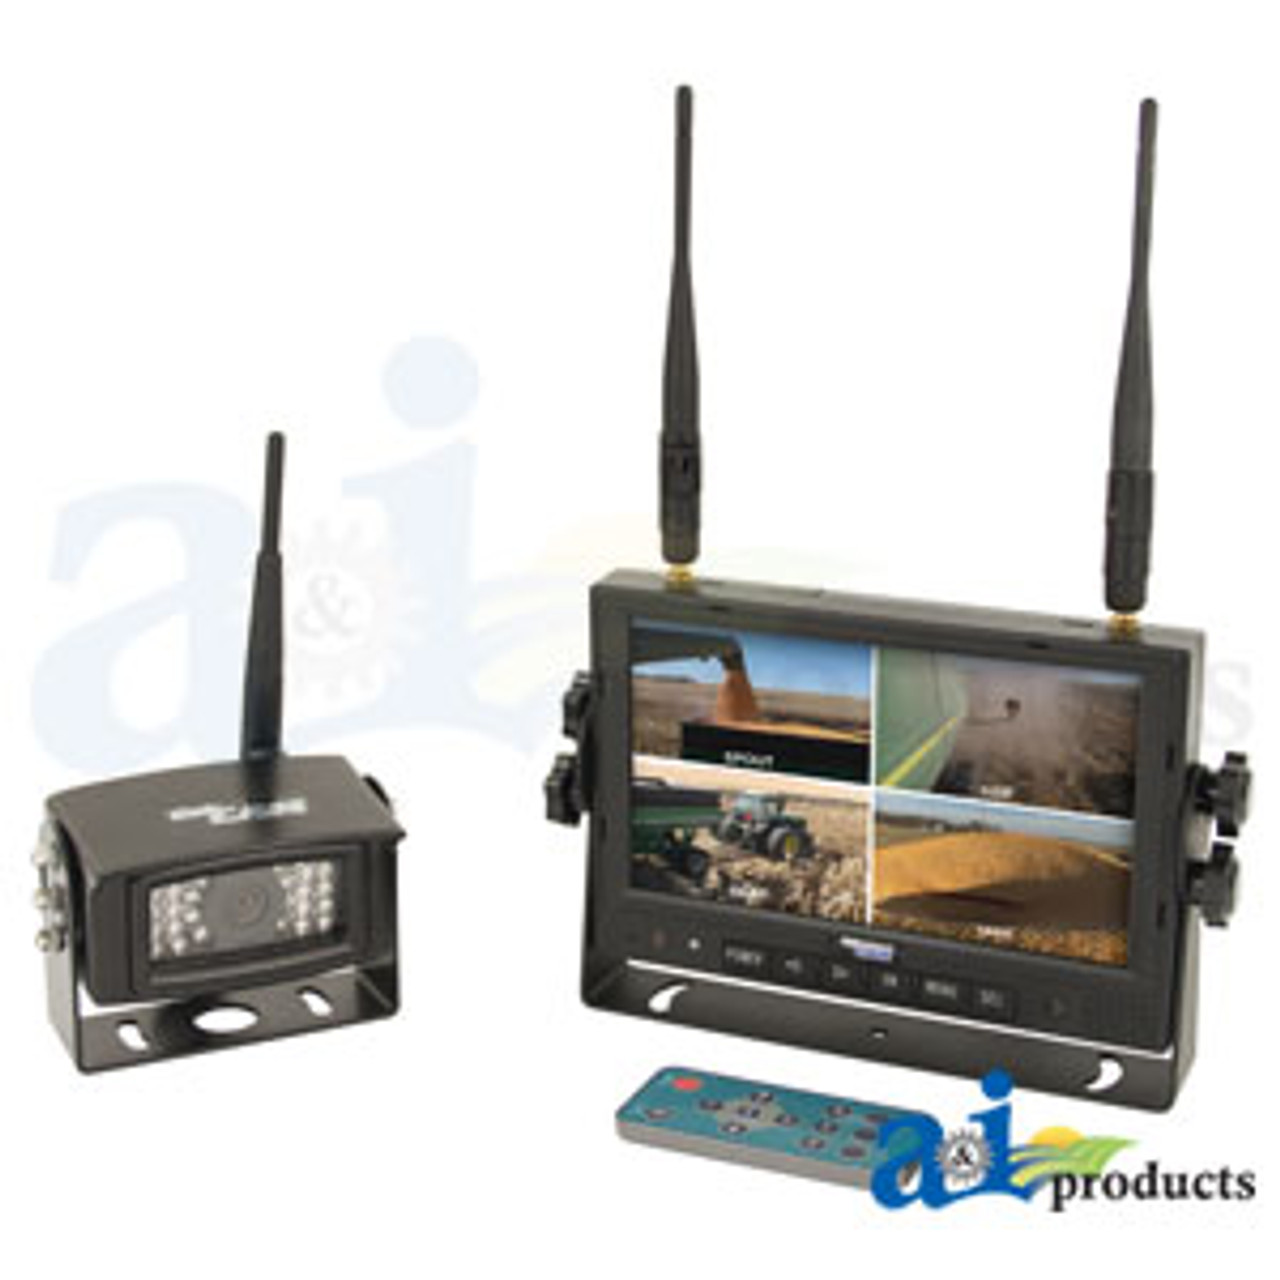 Includes 7 Monitor and 1 Camera CabCAM Video System; Touch Button